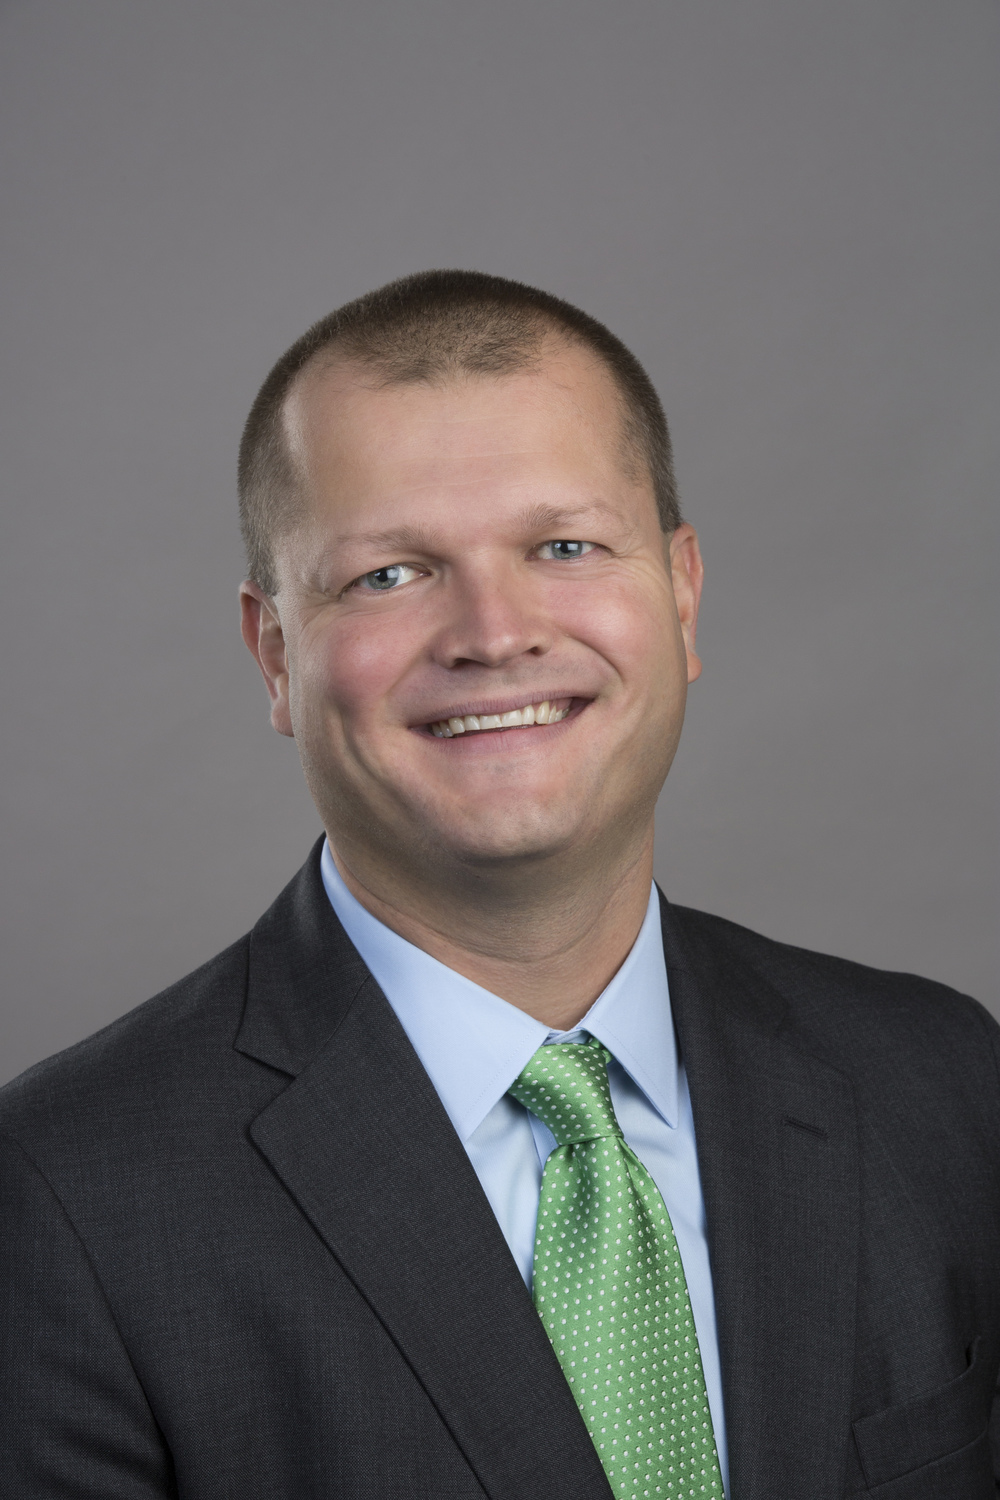 VICE PRESIDENT MATTHEW GIBBONS MANAGING DIRECTOR THE PRIVATEBANK